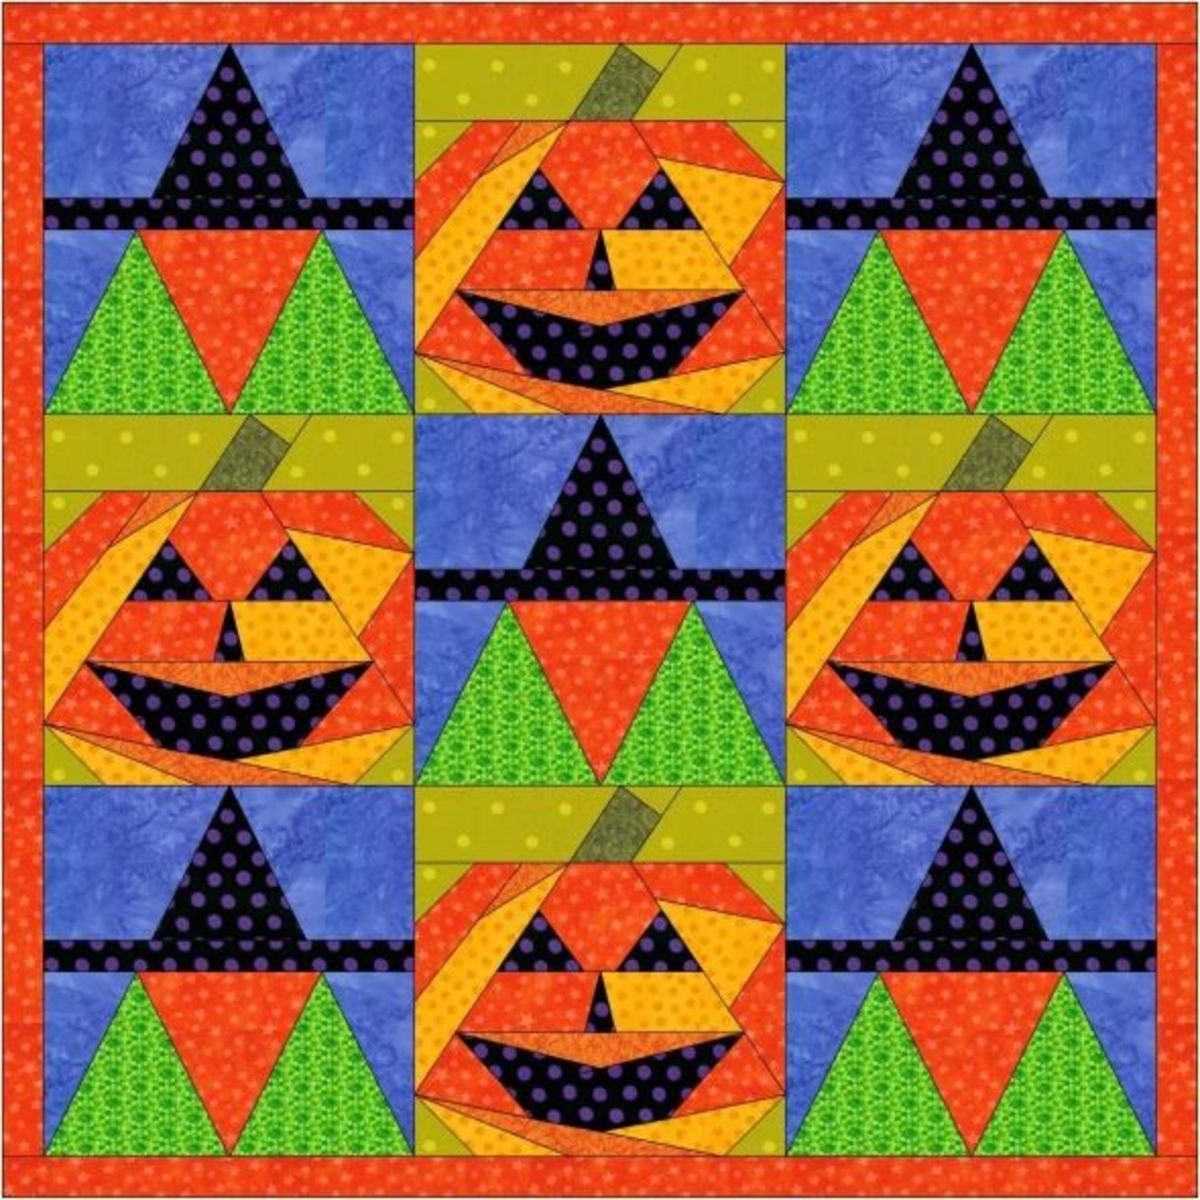 Jacks and Witches quilt